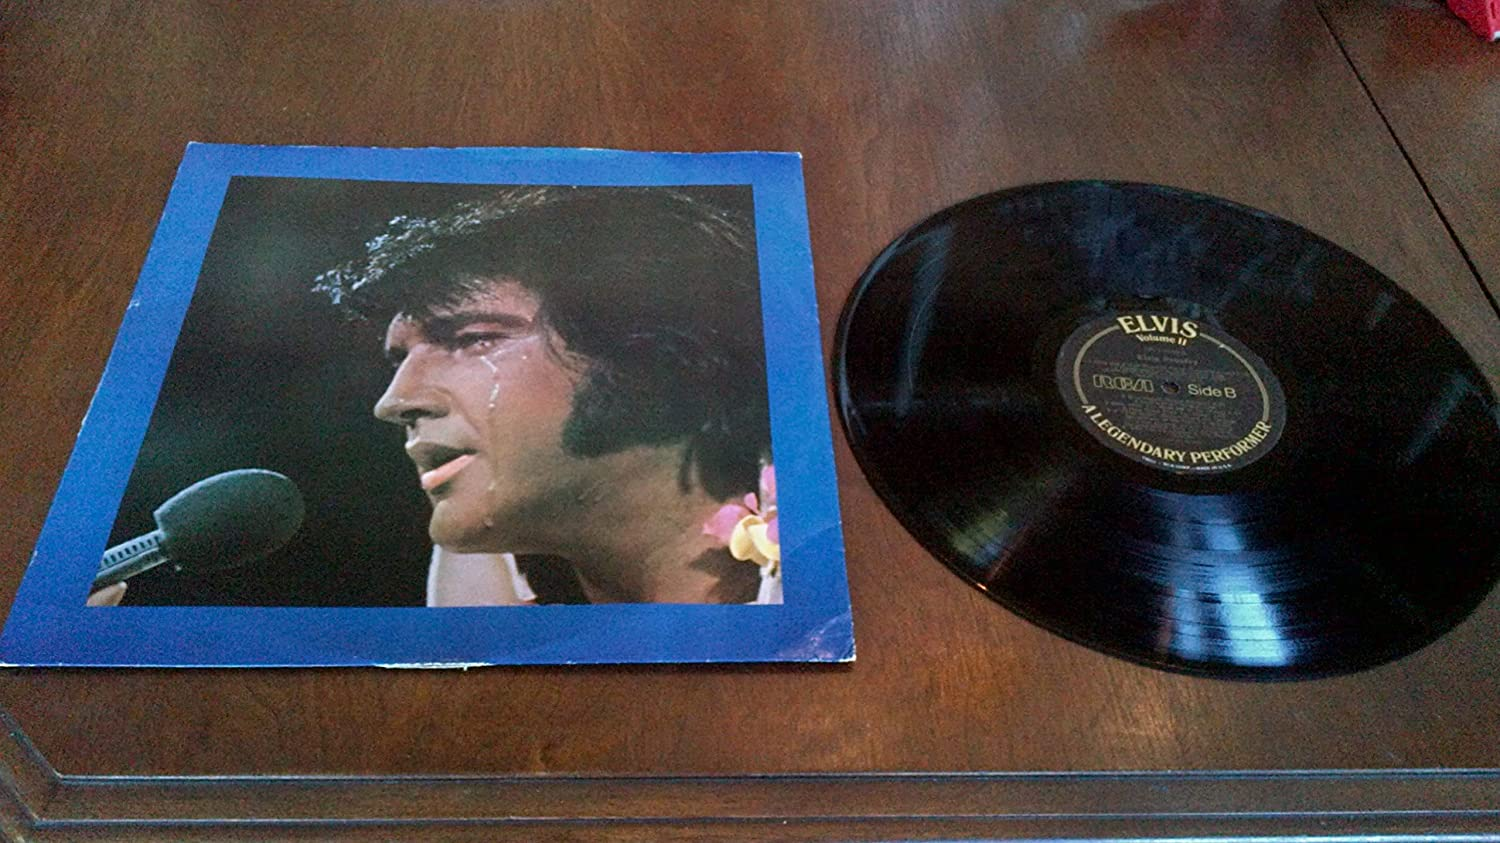 Elvis-A Legendary Performer..Volume 2/ 1976, RCA..CPL1-1349..rare vocal interview..3:24 minutes, 4/10/56...inc; songs..Blue Suede Shoes, Blue Christmas, Jailhouse Rock, It's Now or Never, How Great Thou Art..In cardboard sleeve..excellent condition Great analog sound ,wiil use protective plastic cover